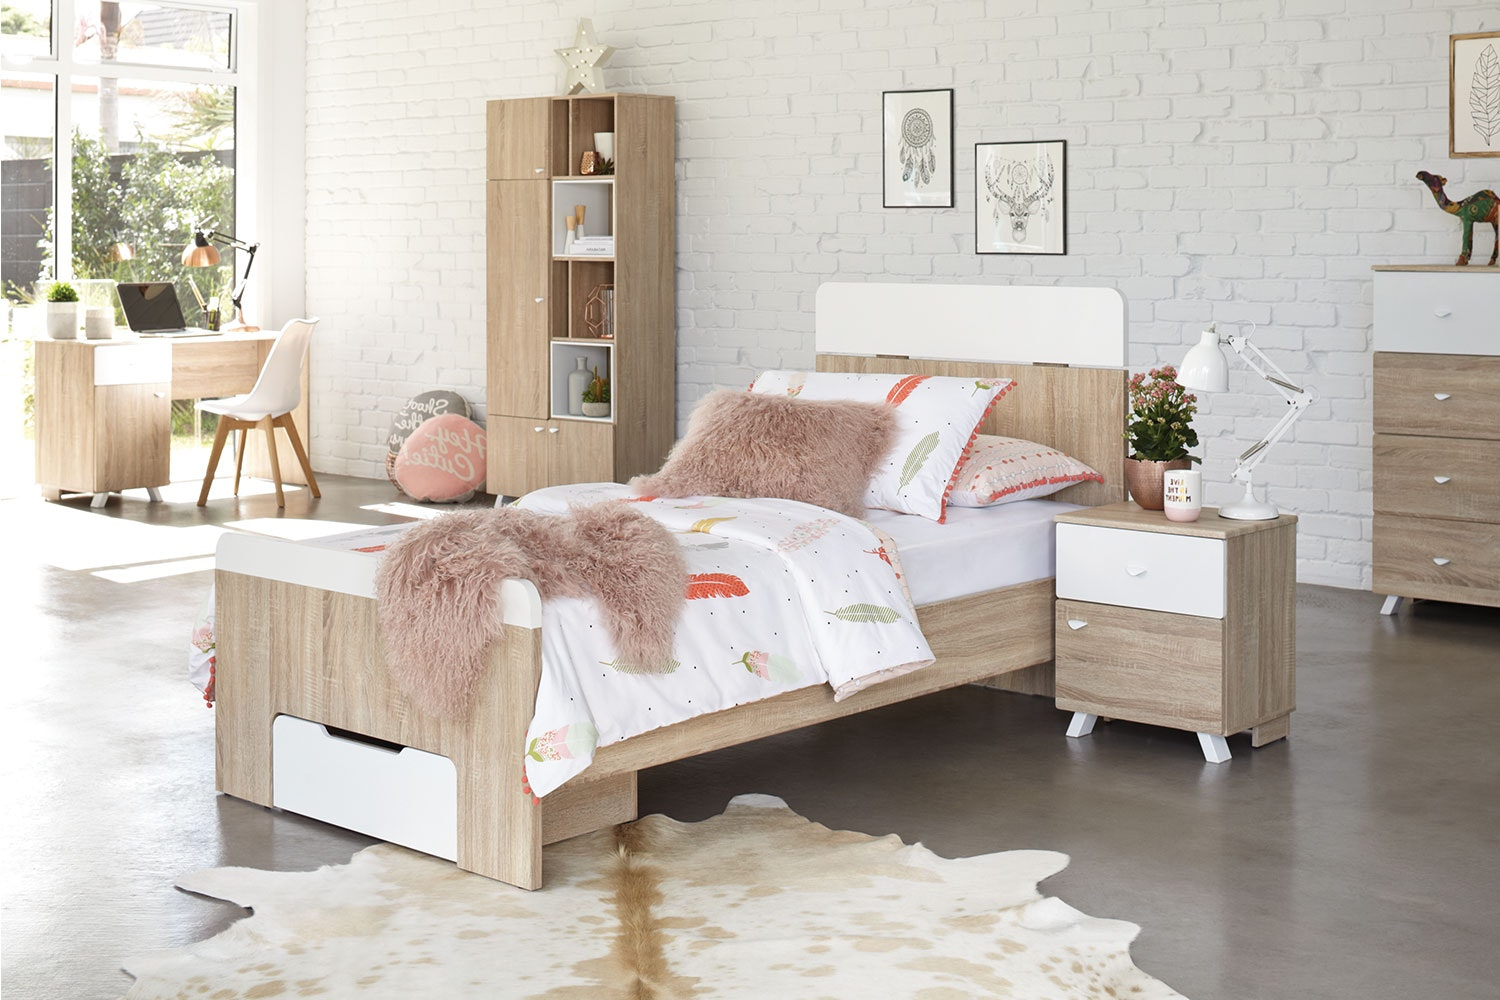 Merveilleux Maali King Single Bed Frame By Stoke Furniture